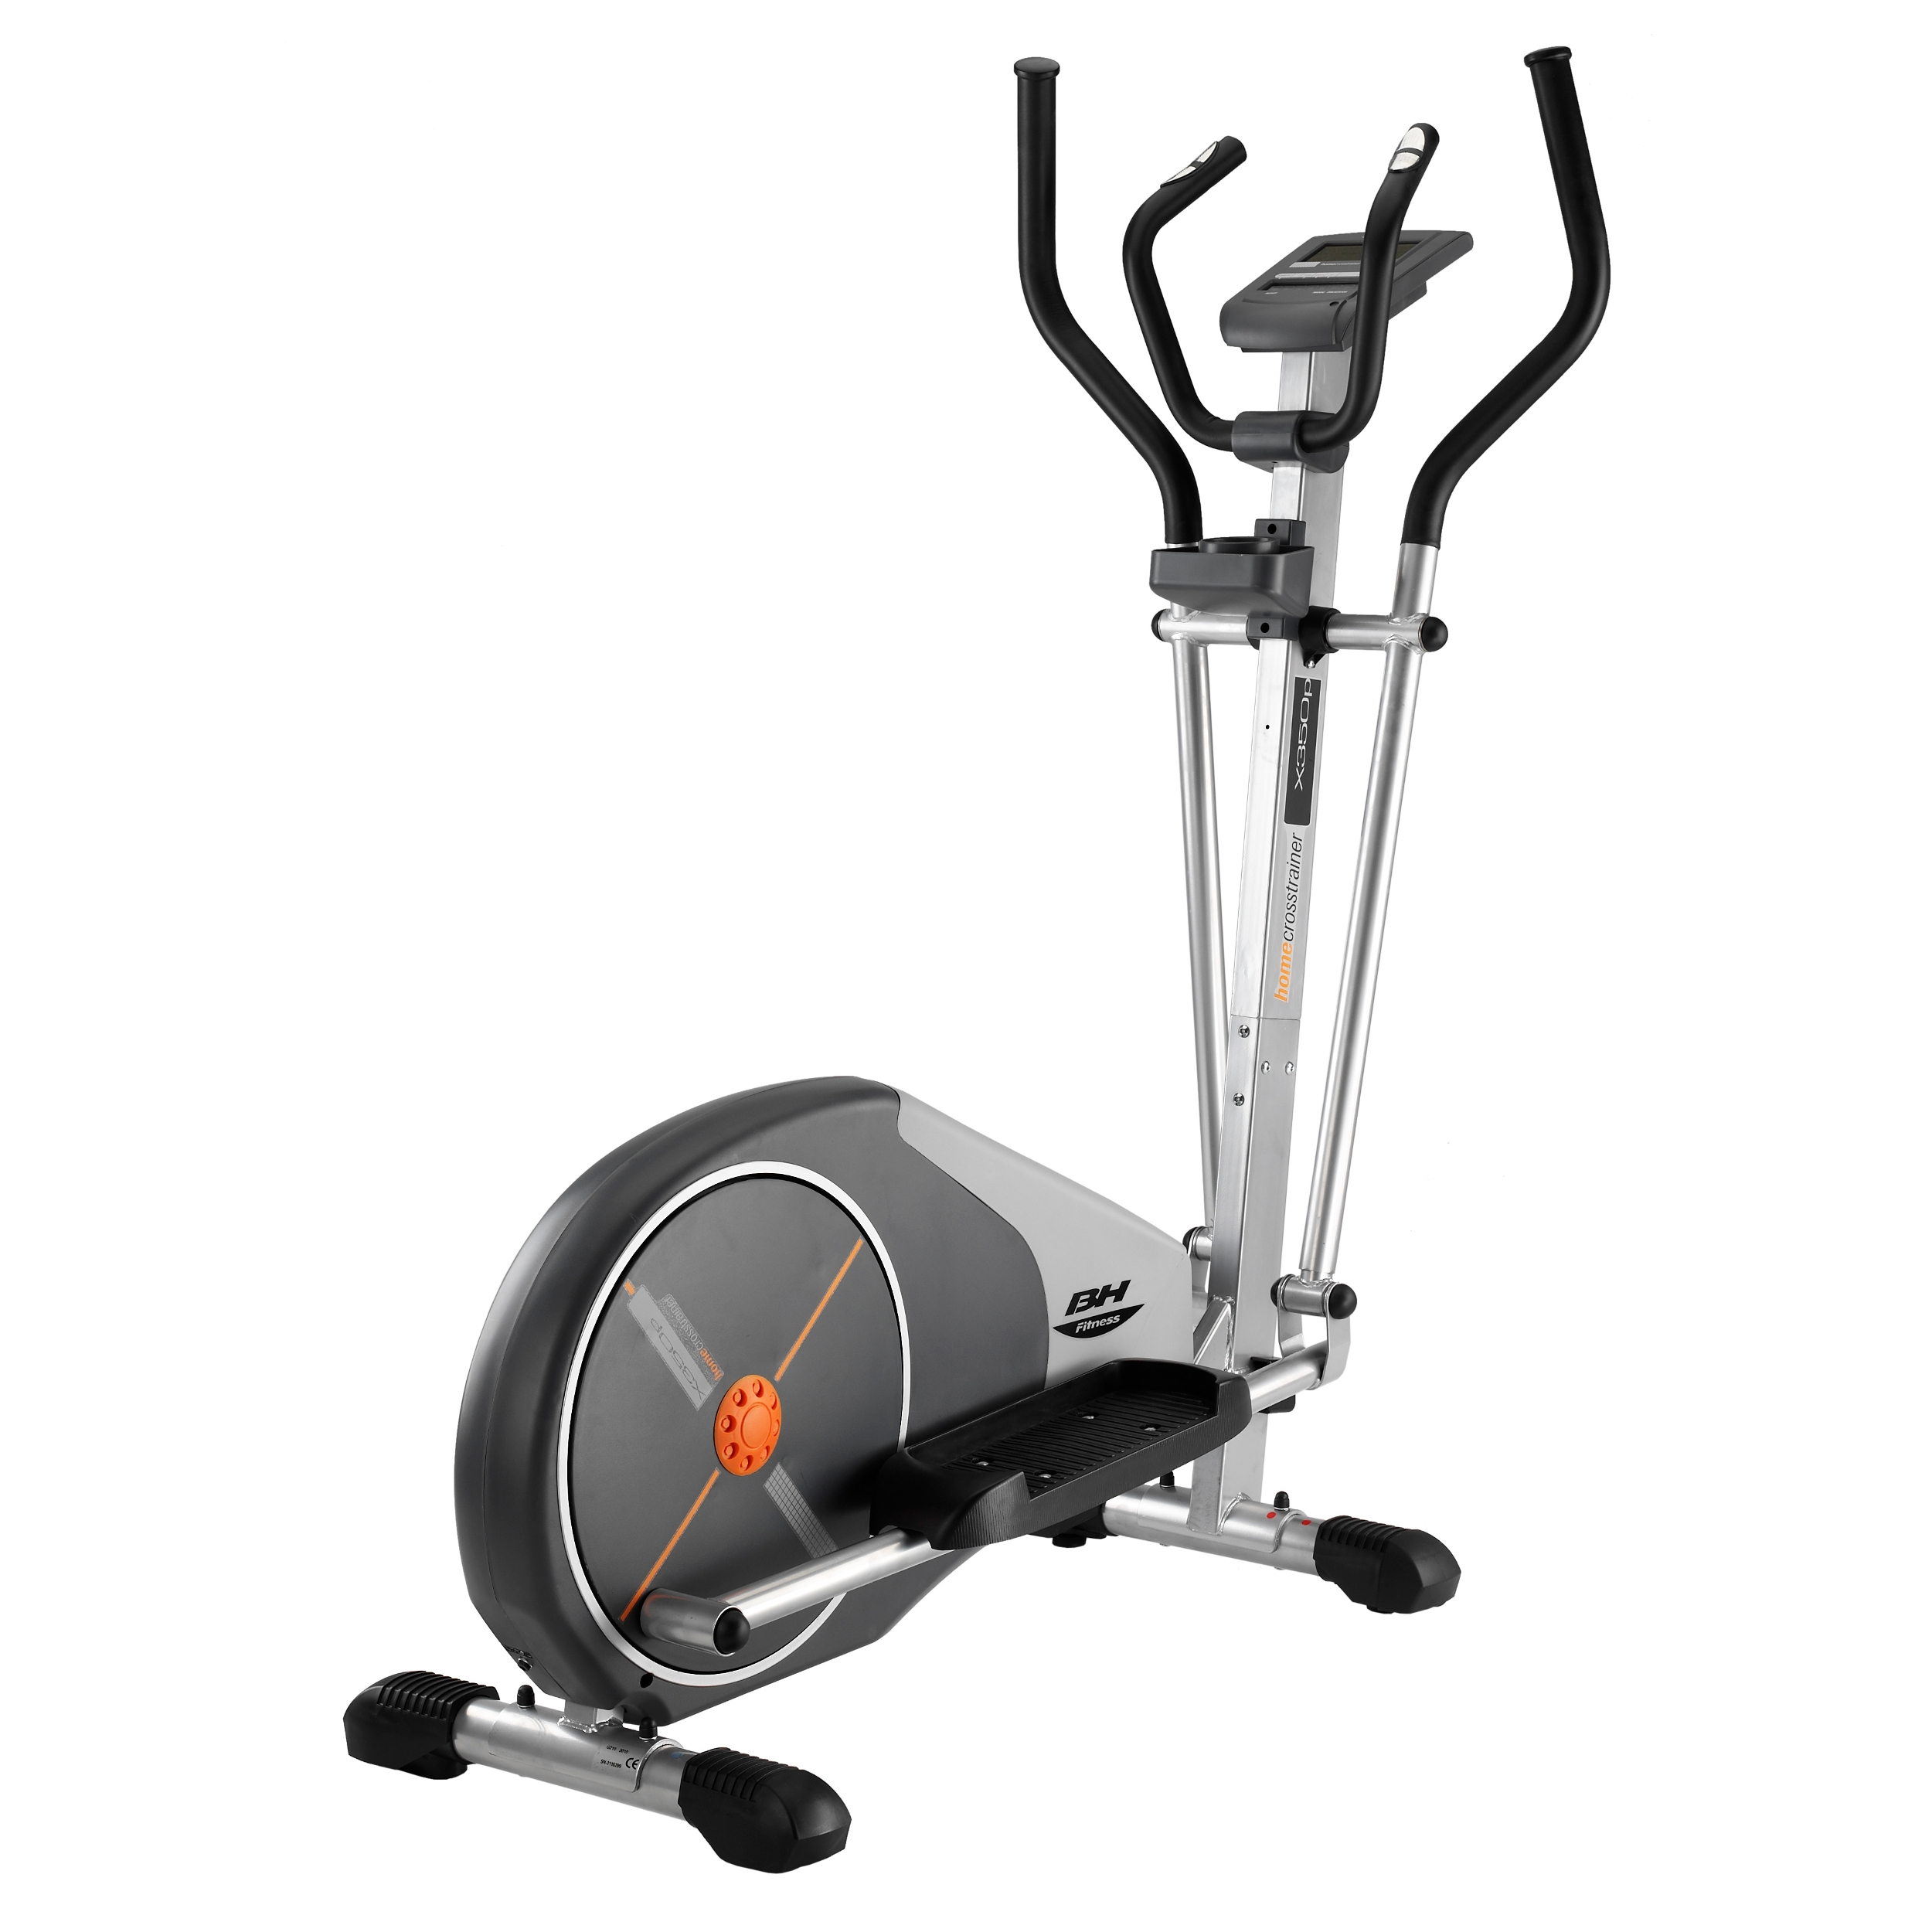 Life Fitness Life Fitness X1 Elliptical Cross Trainer Use our interactive diagrams, accessories, and expert repair help to fix your nordictrack elliptical. life fitness blogger